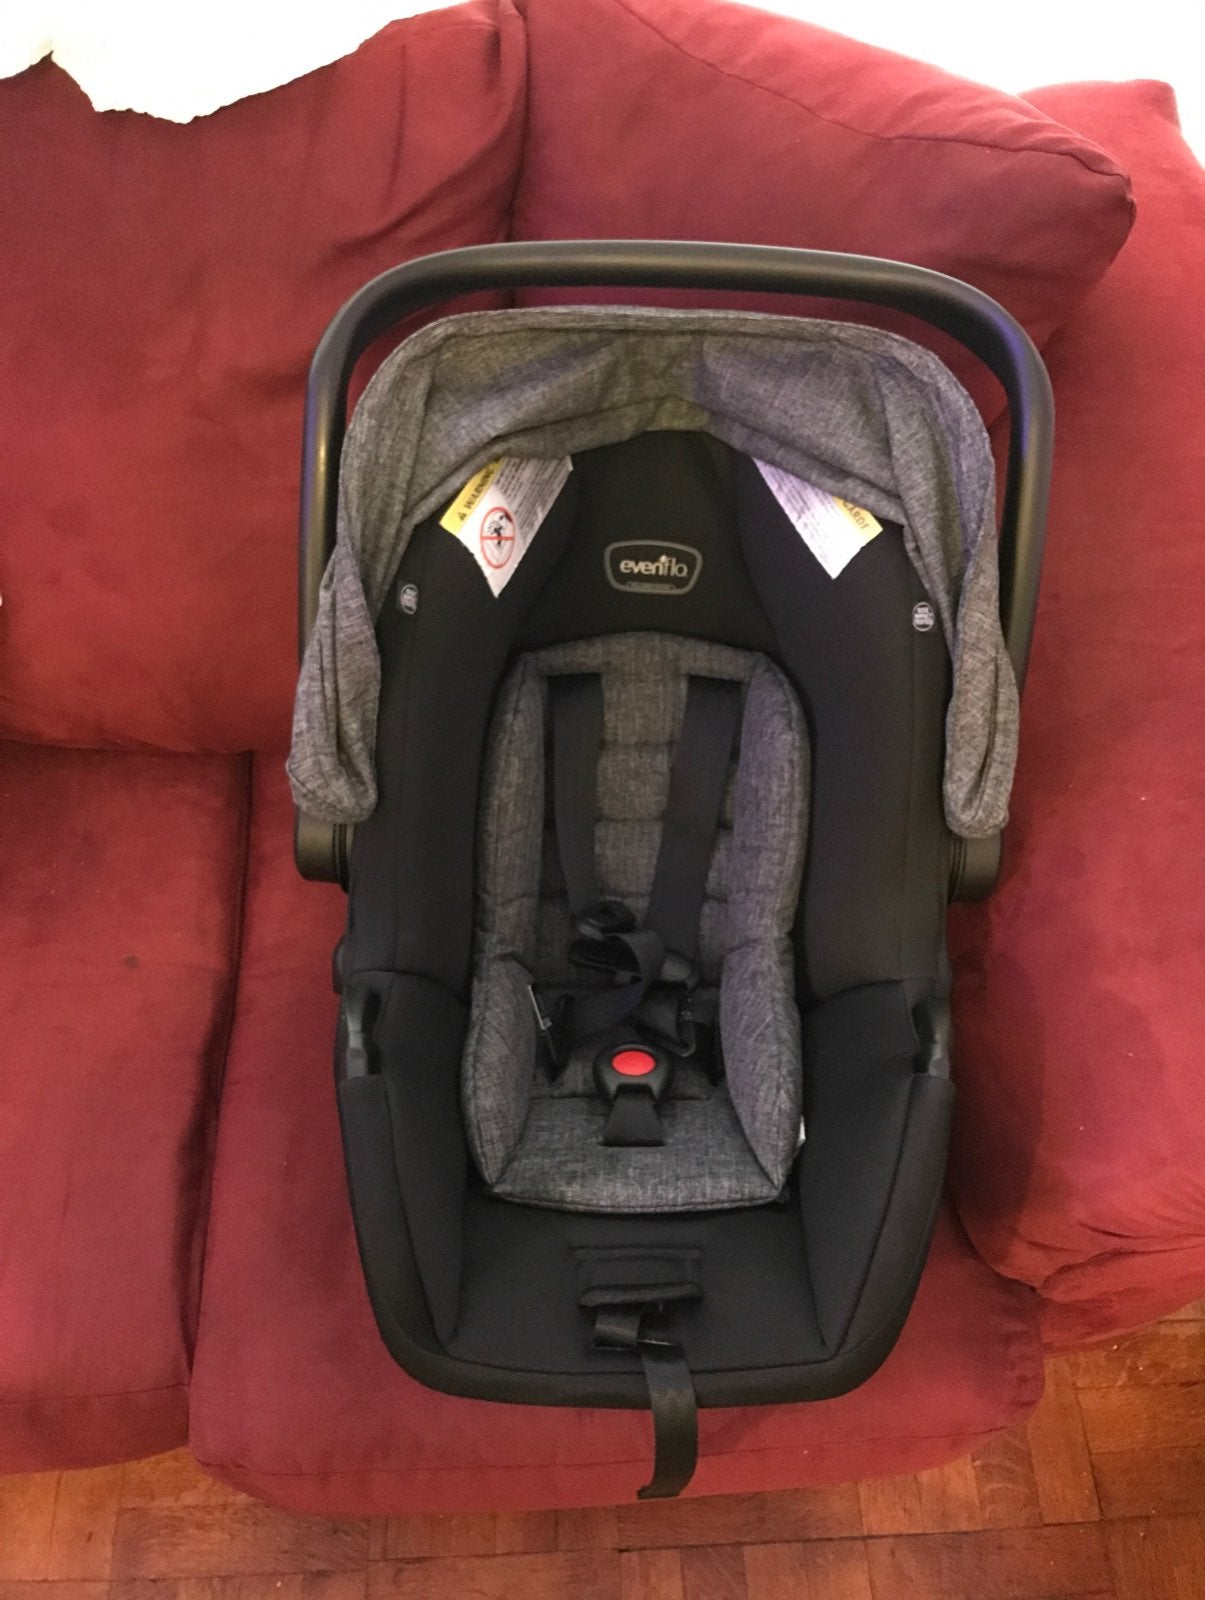 Evenflo Car Seat w/ Free Stop Germs Sign